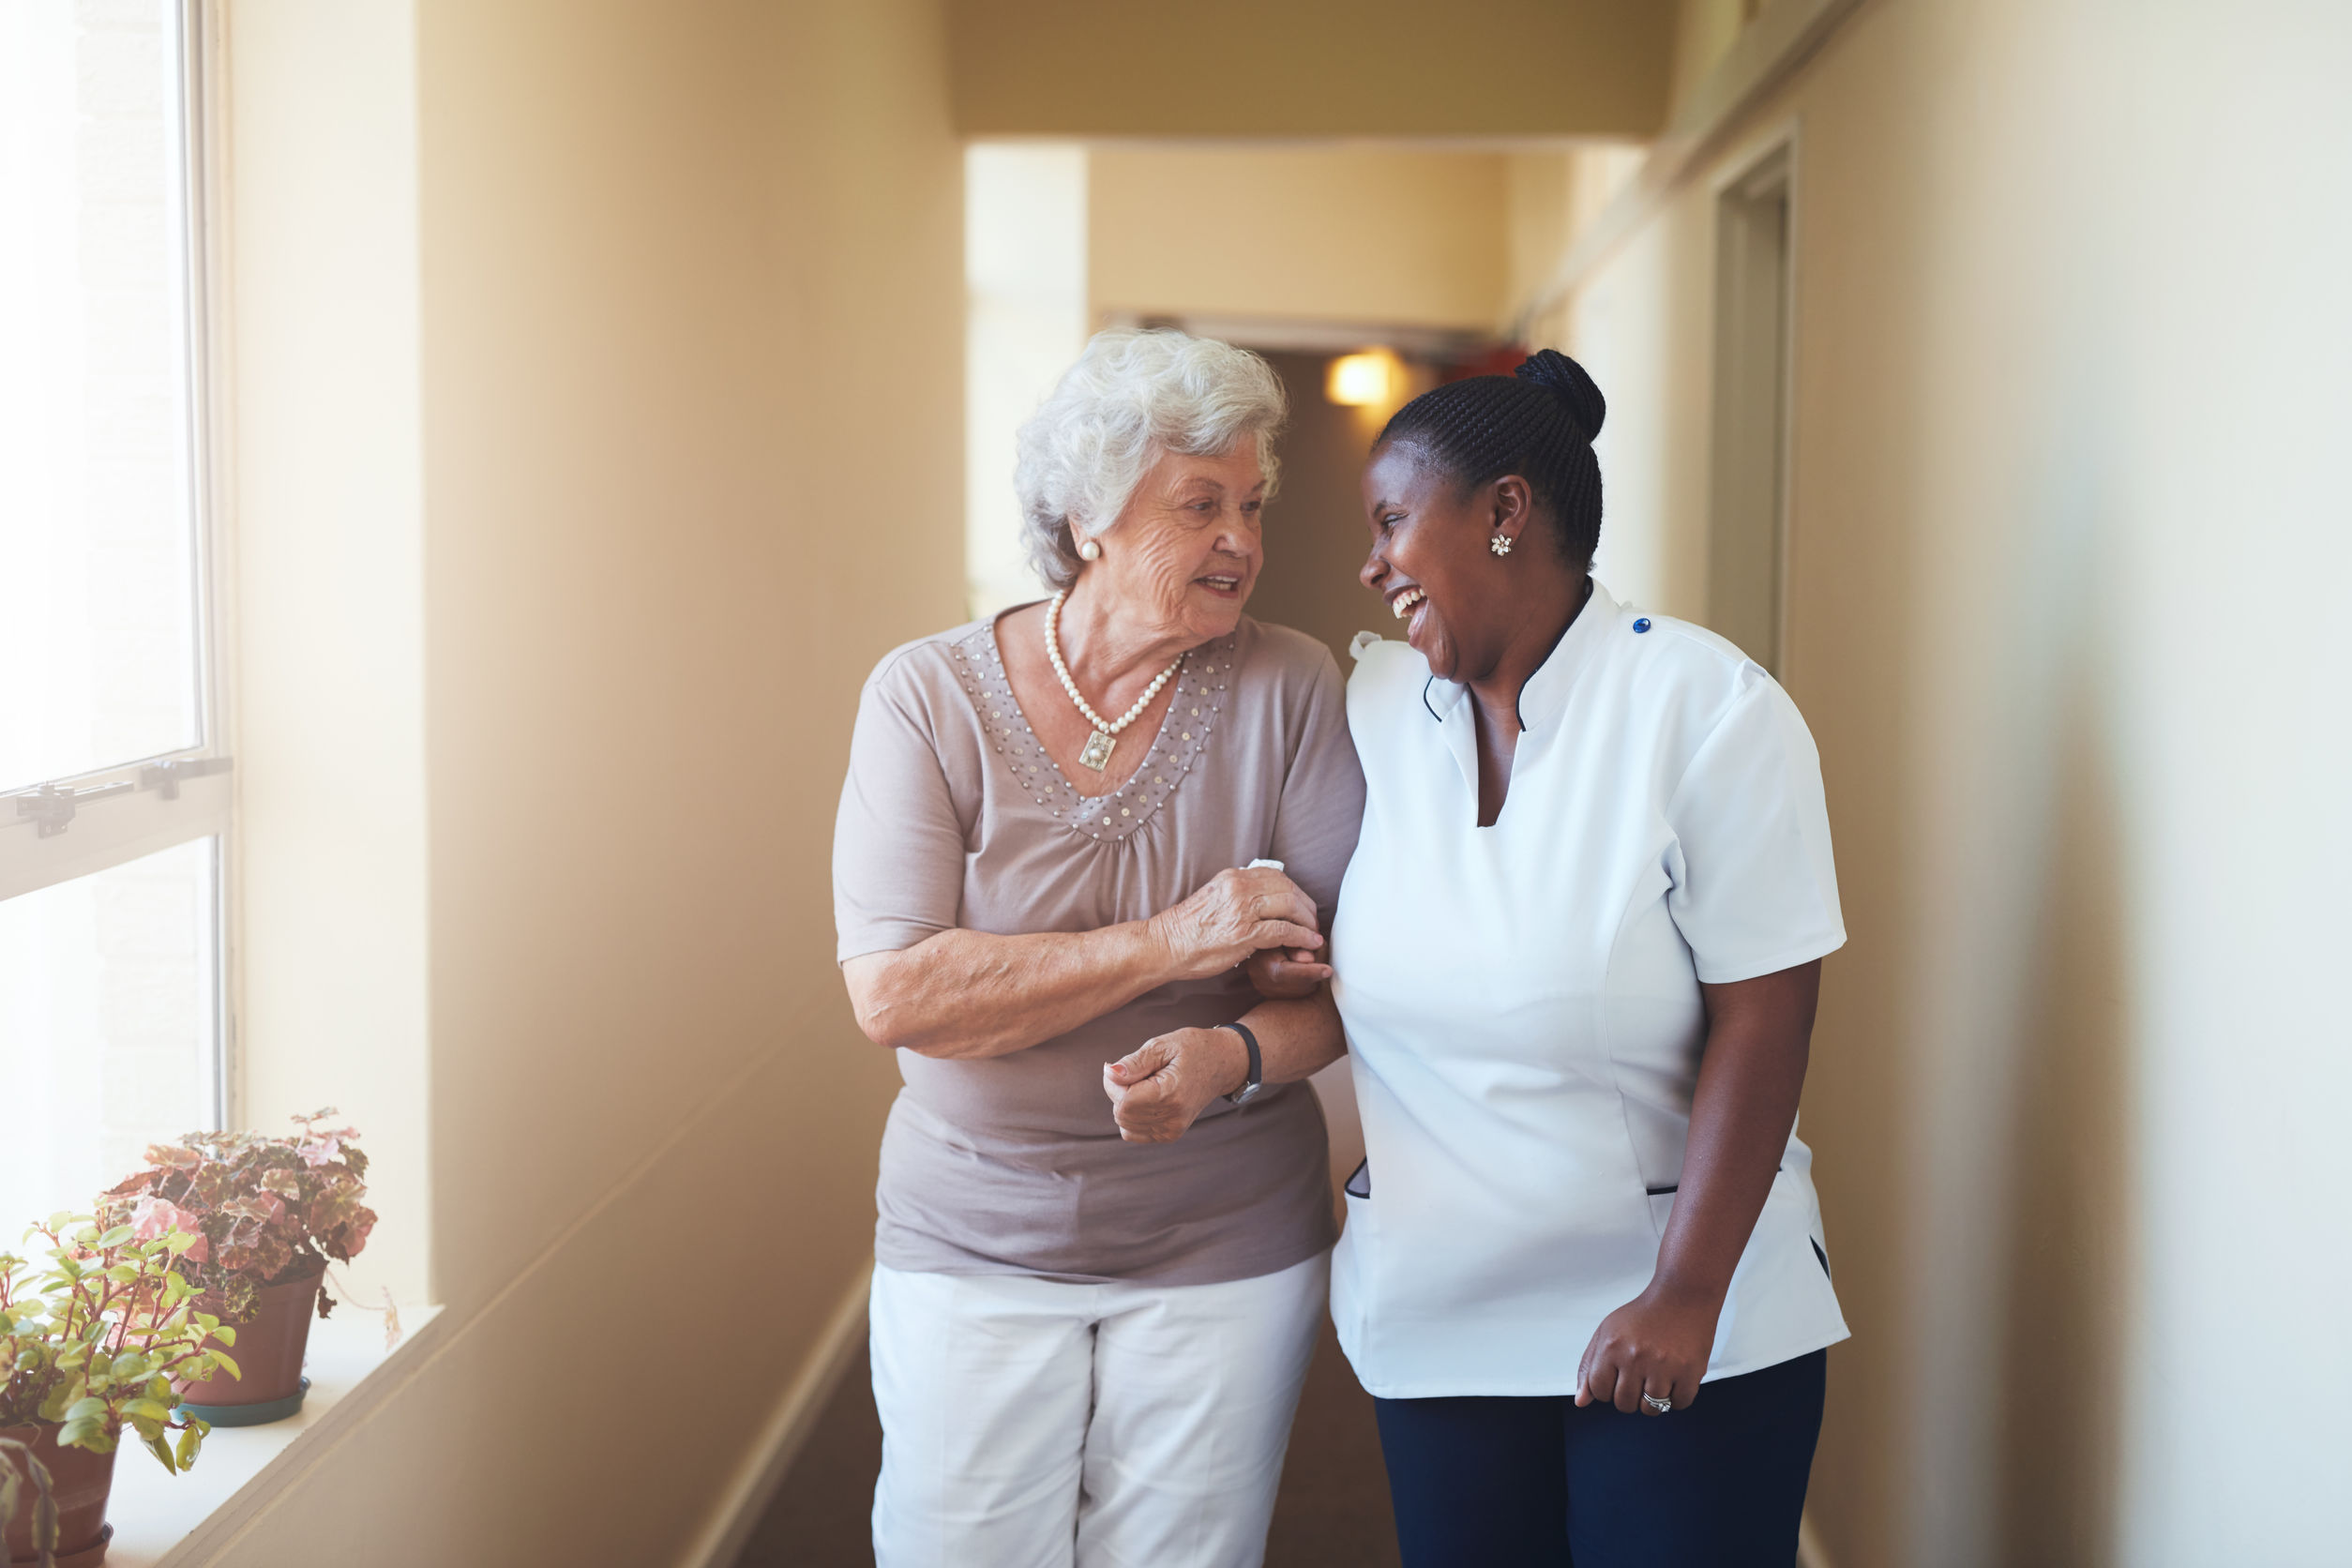 Promoting dignity in care